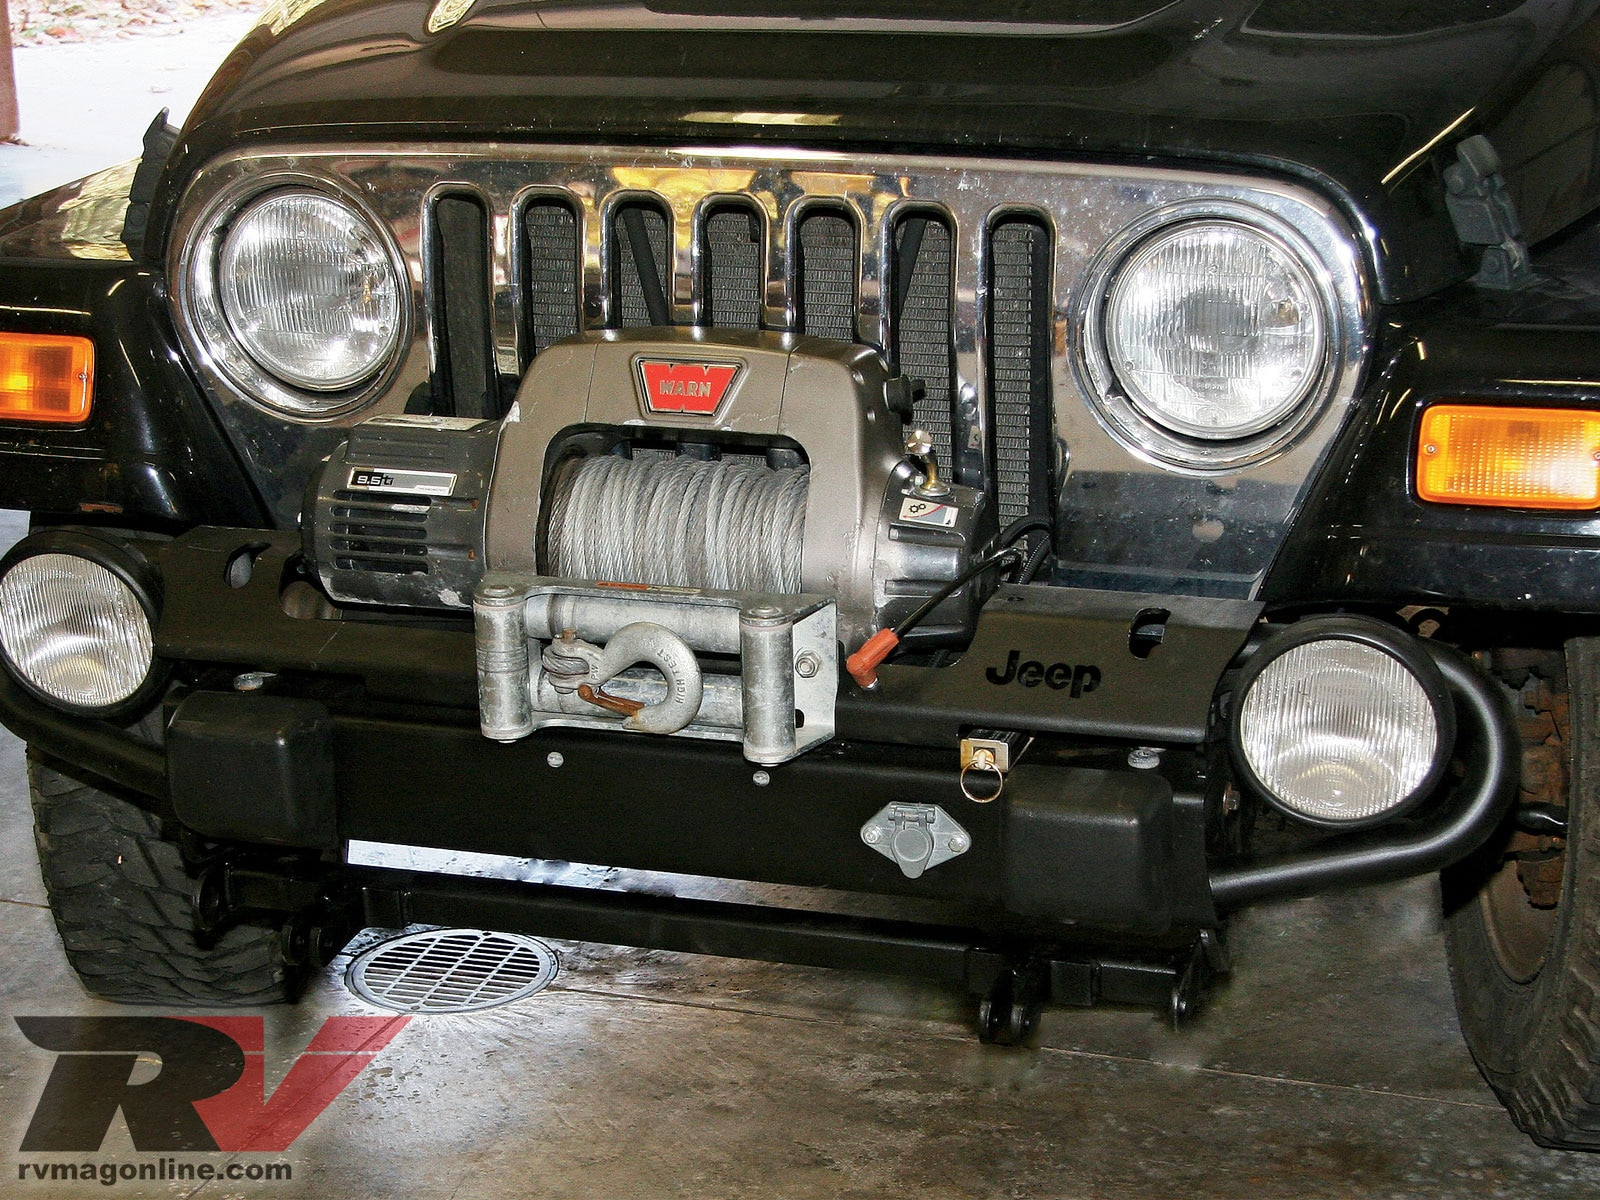 Jeep Tow Wiring | WIRING DIAGRAM eBOOK Jeep Flat Tow Wiring Diagram on